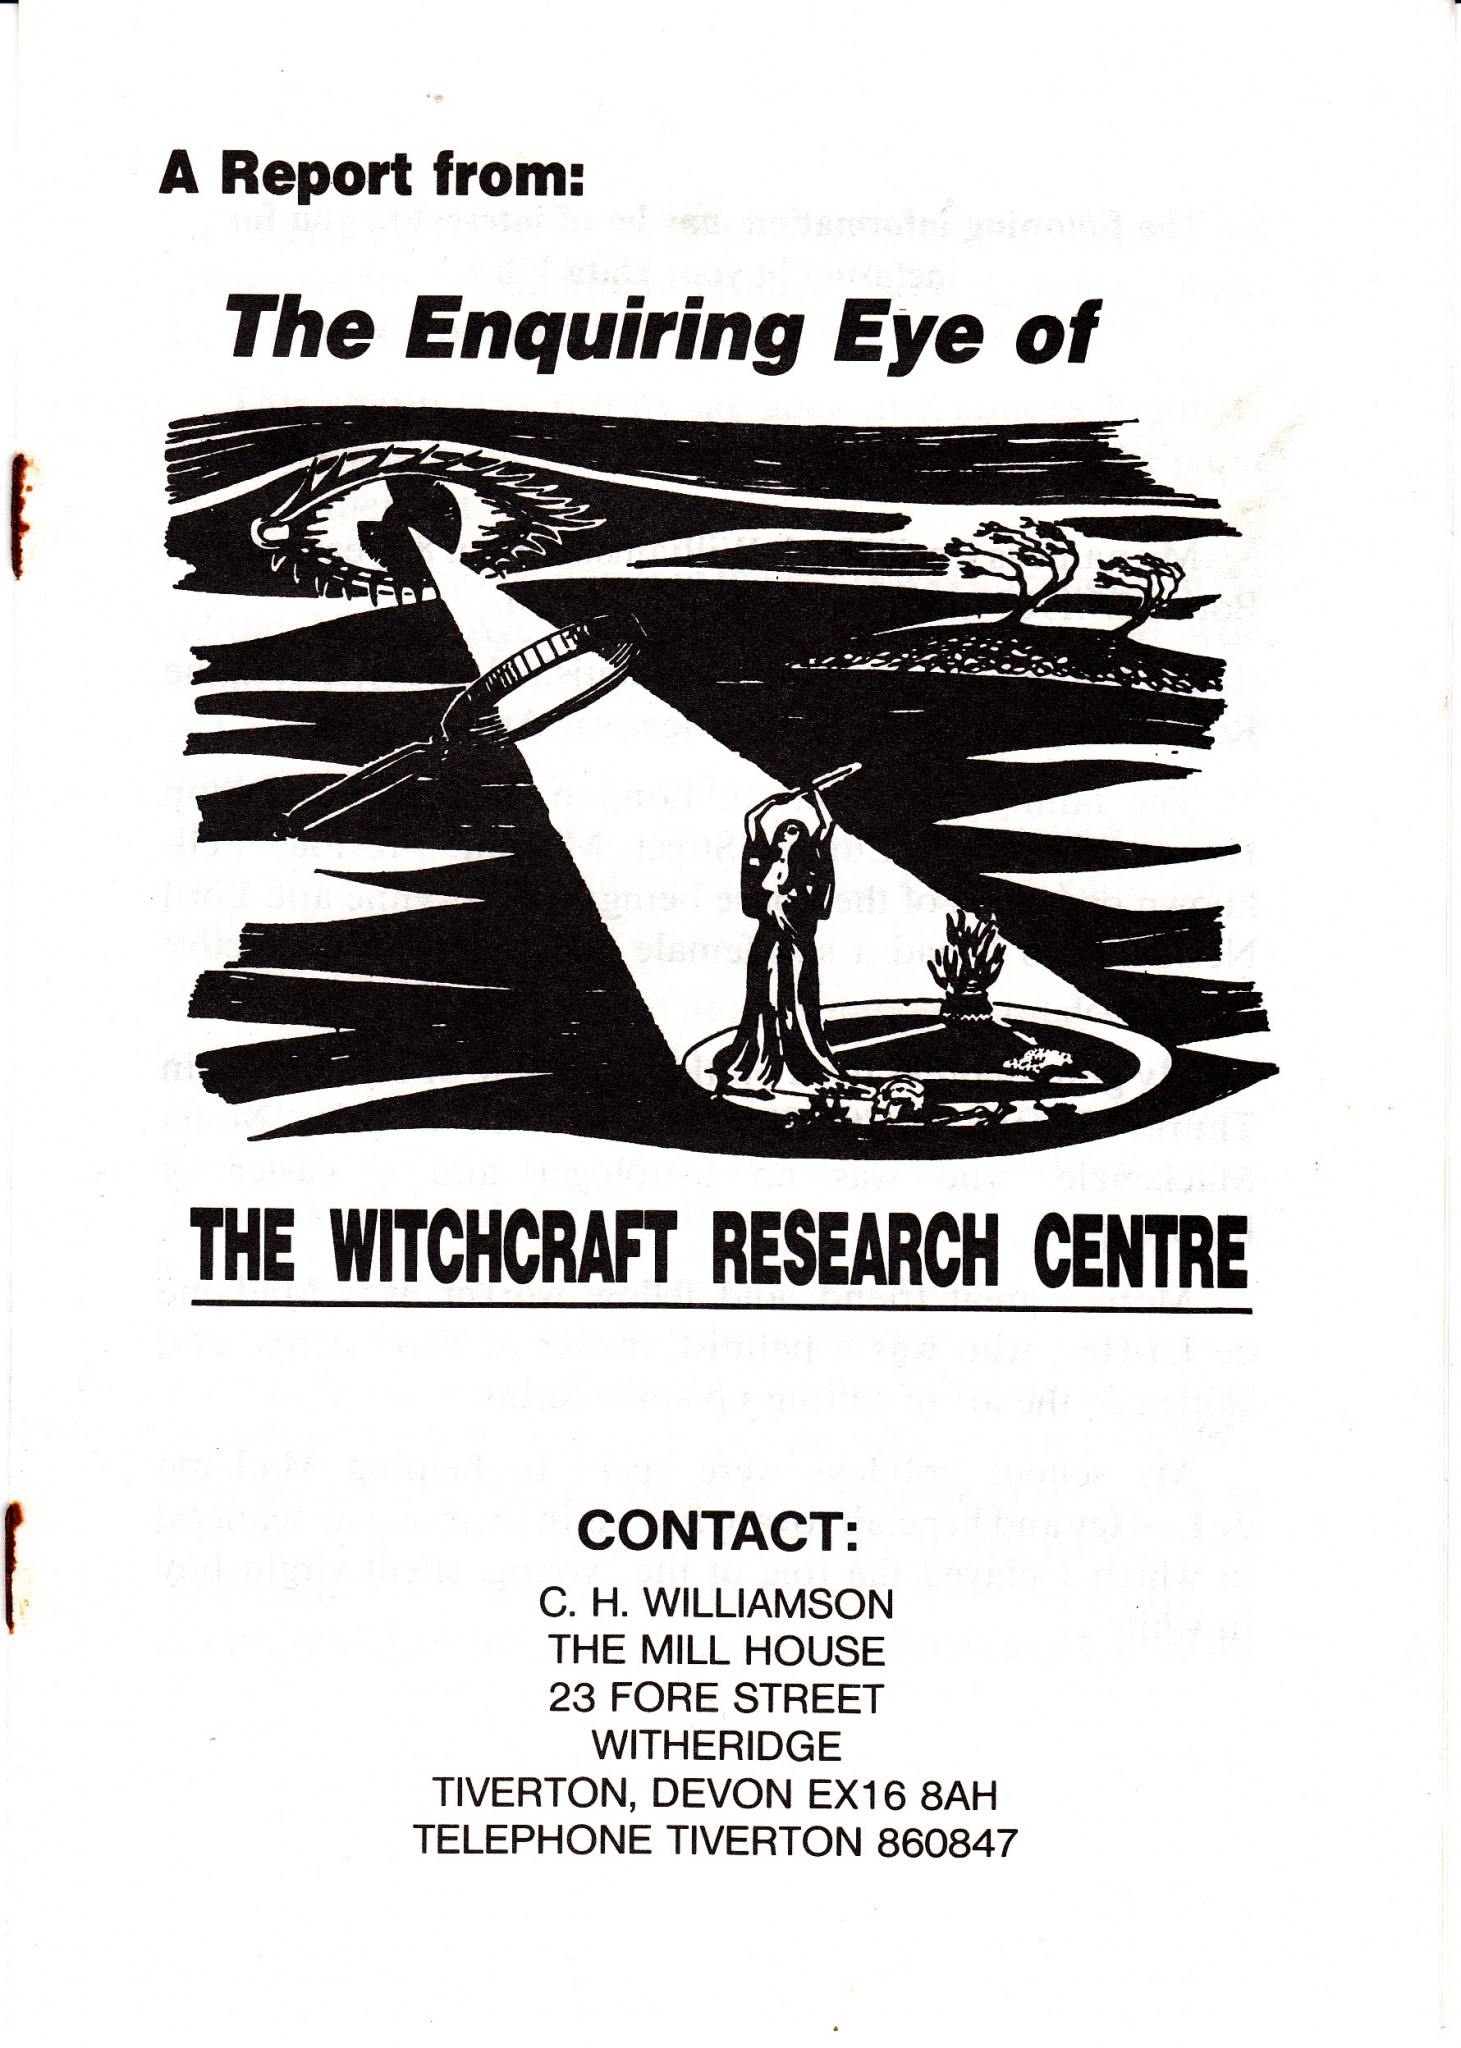 The Enquiring Eye of the Witchcraft Research Centre – call for articles